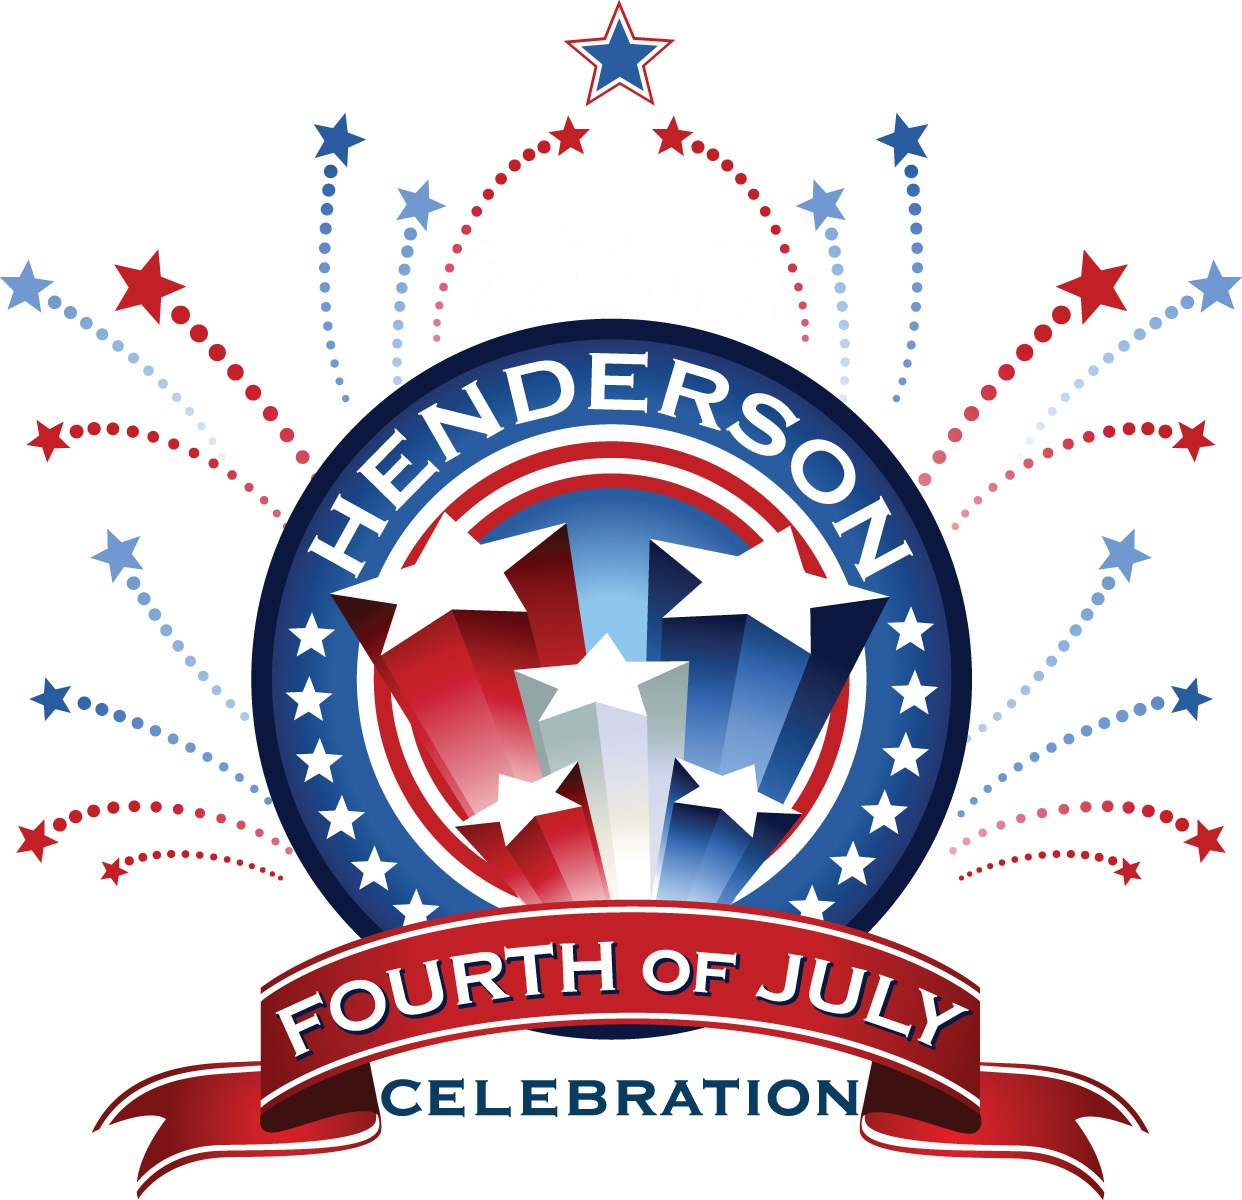 Sandra salsbury happy 4th of july in las vegas henderson 4th of july logo m4hsunfo Image collections